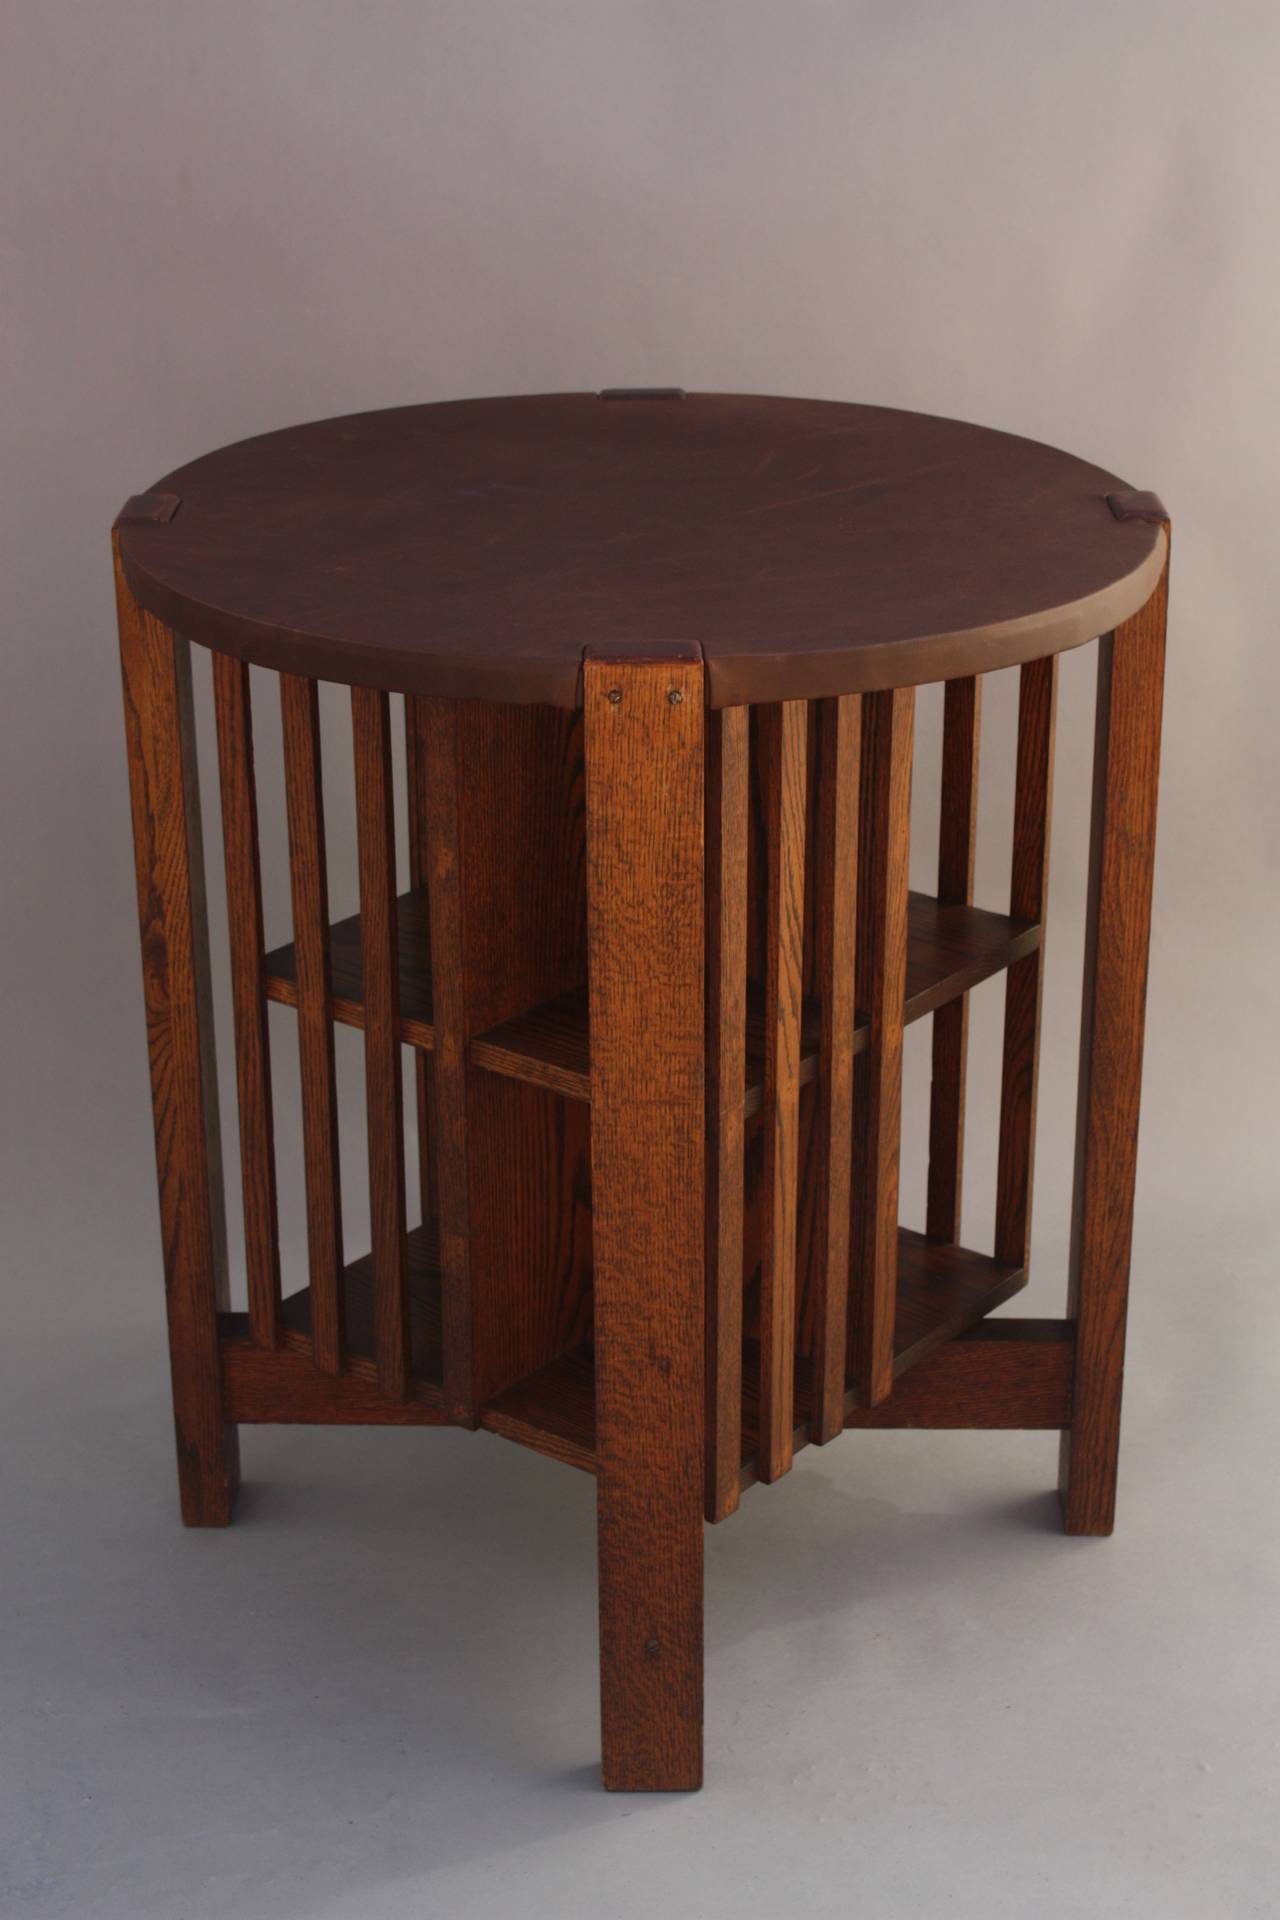 Round Arts & Crafts Table with Revolving Bookcase 2 - Round Arts And Crafts Table With Revolving Bookcase At 1stdibs